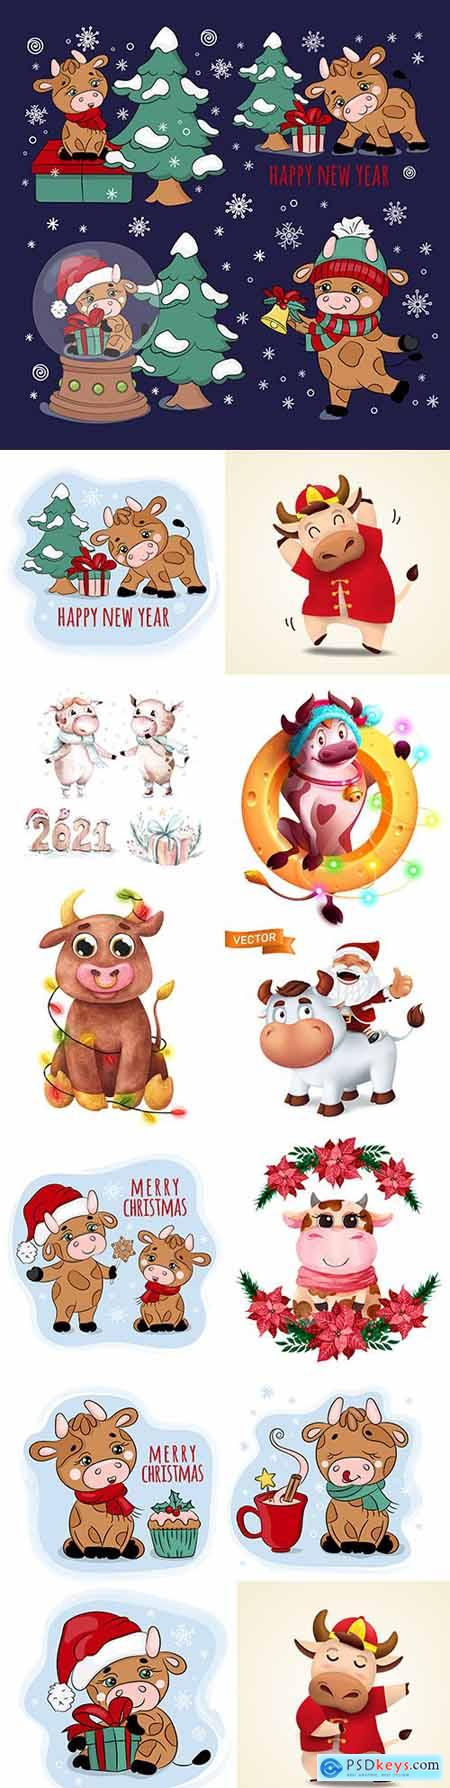 Cartoon bull in Christmas decorations illustration symbol New Year 2021